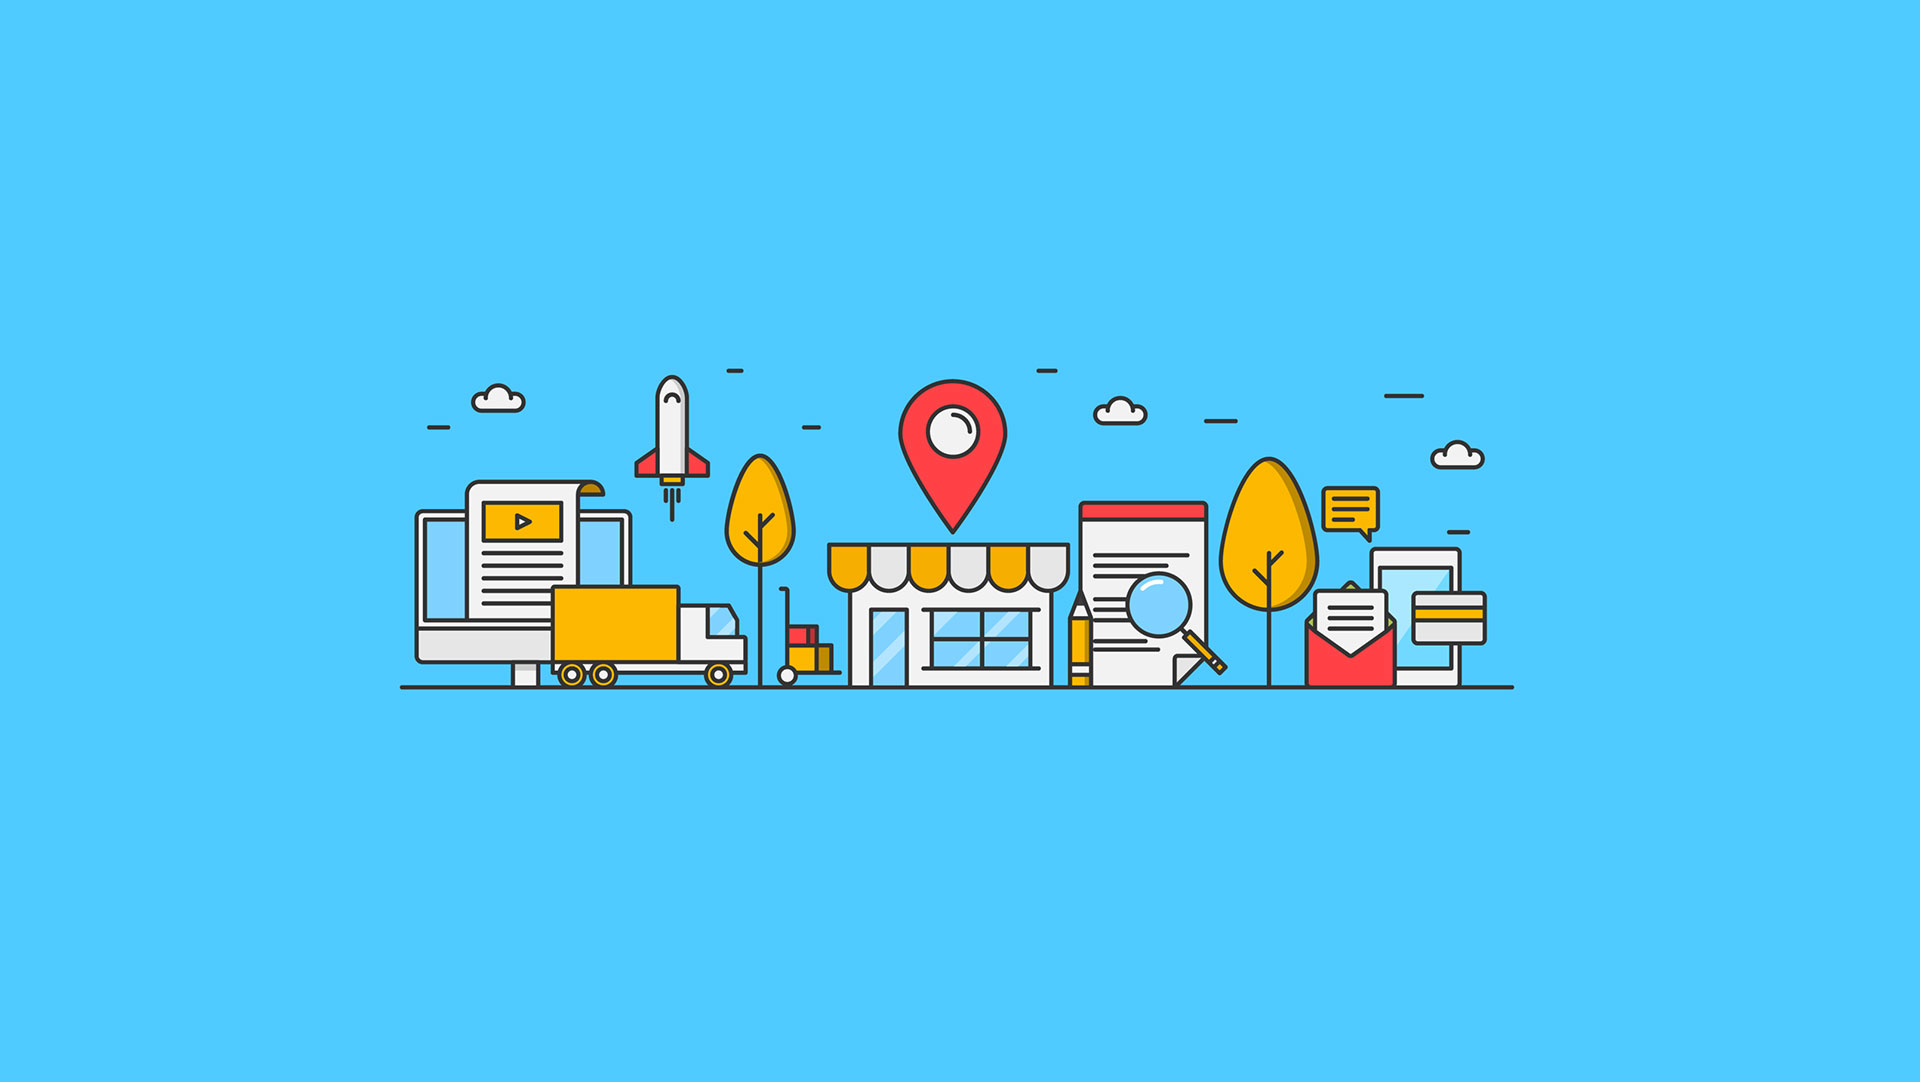 google local ranking factors 2020 - Google Local Ranking Factors for 2020